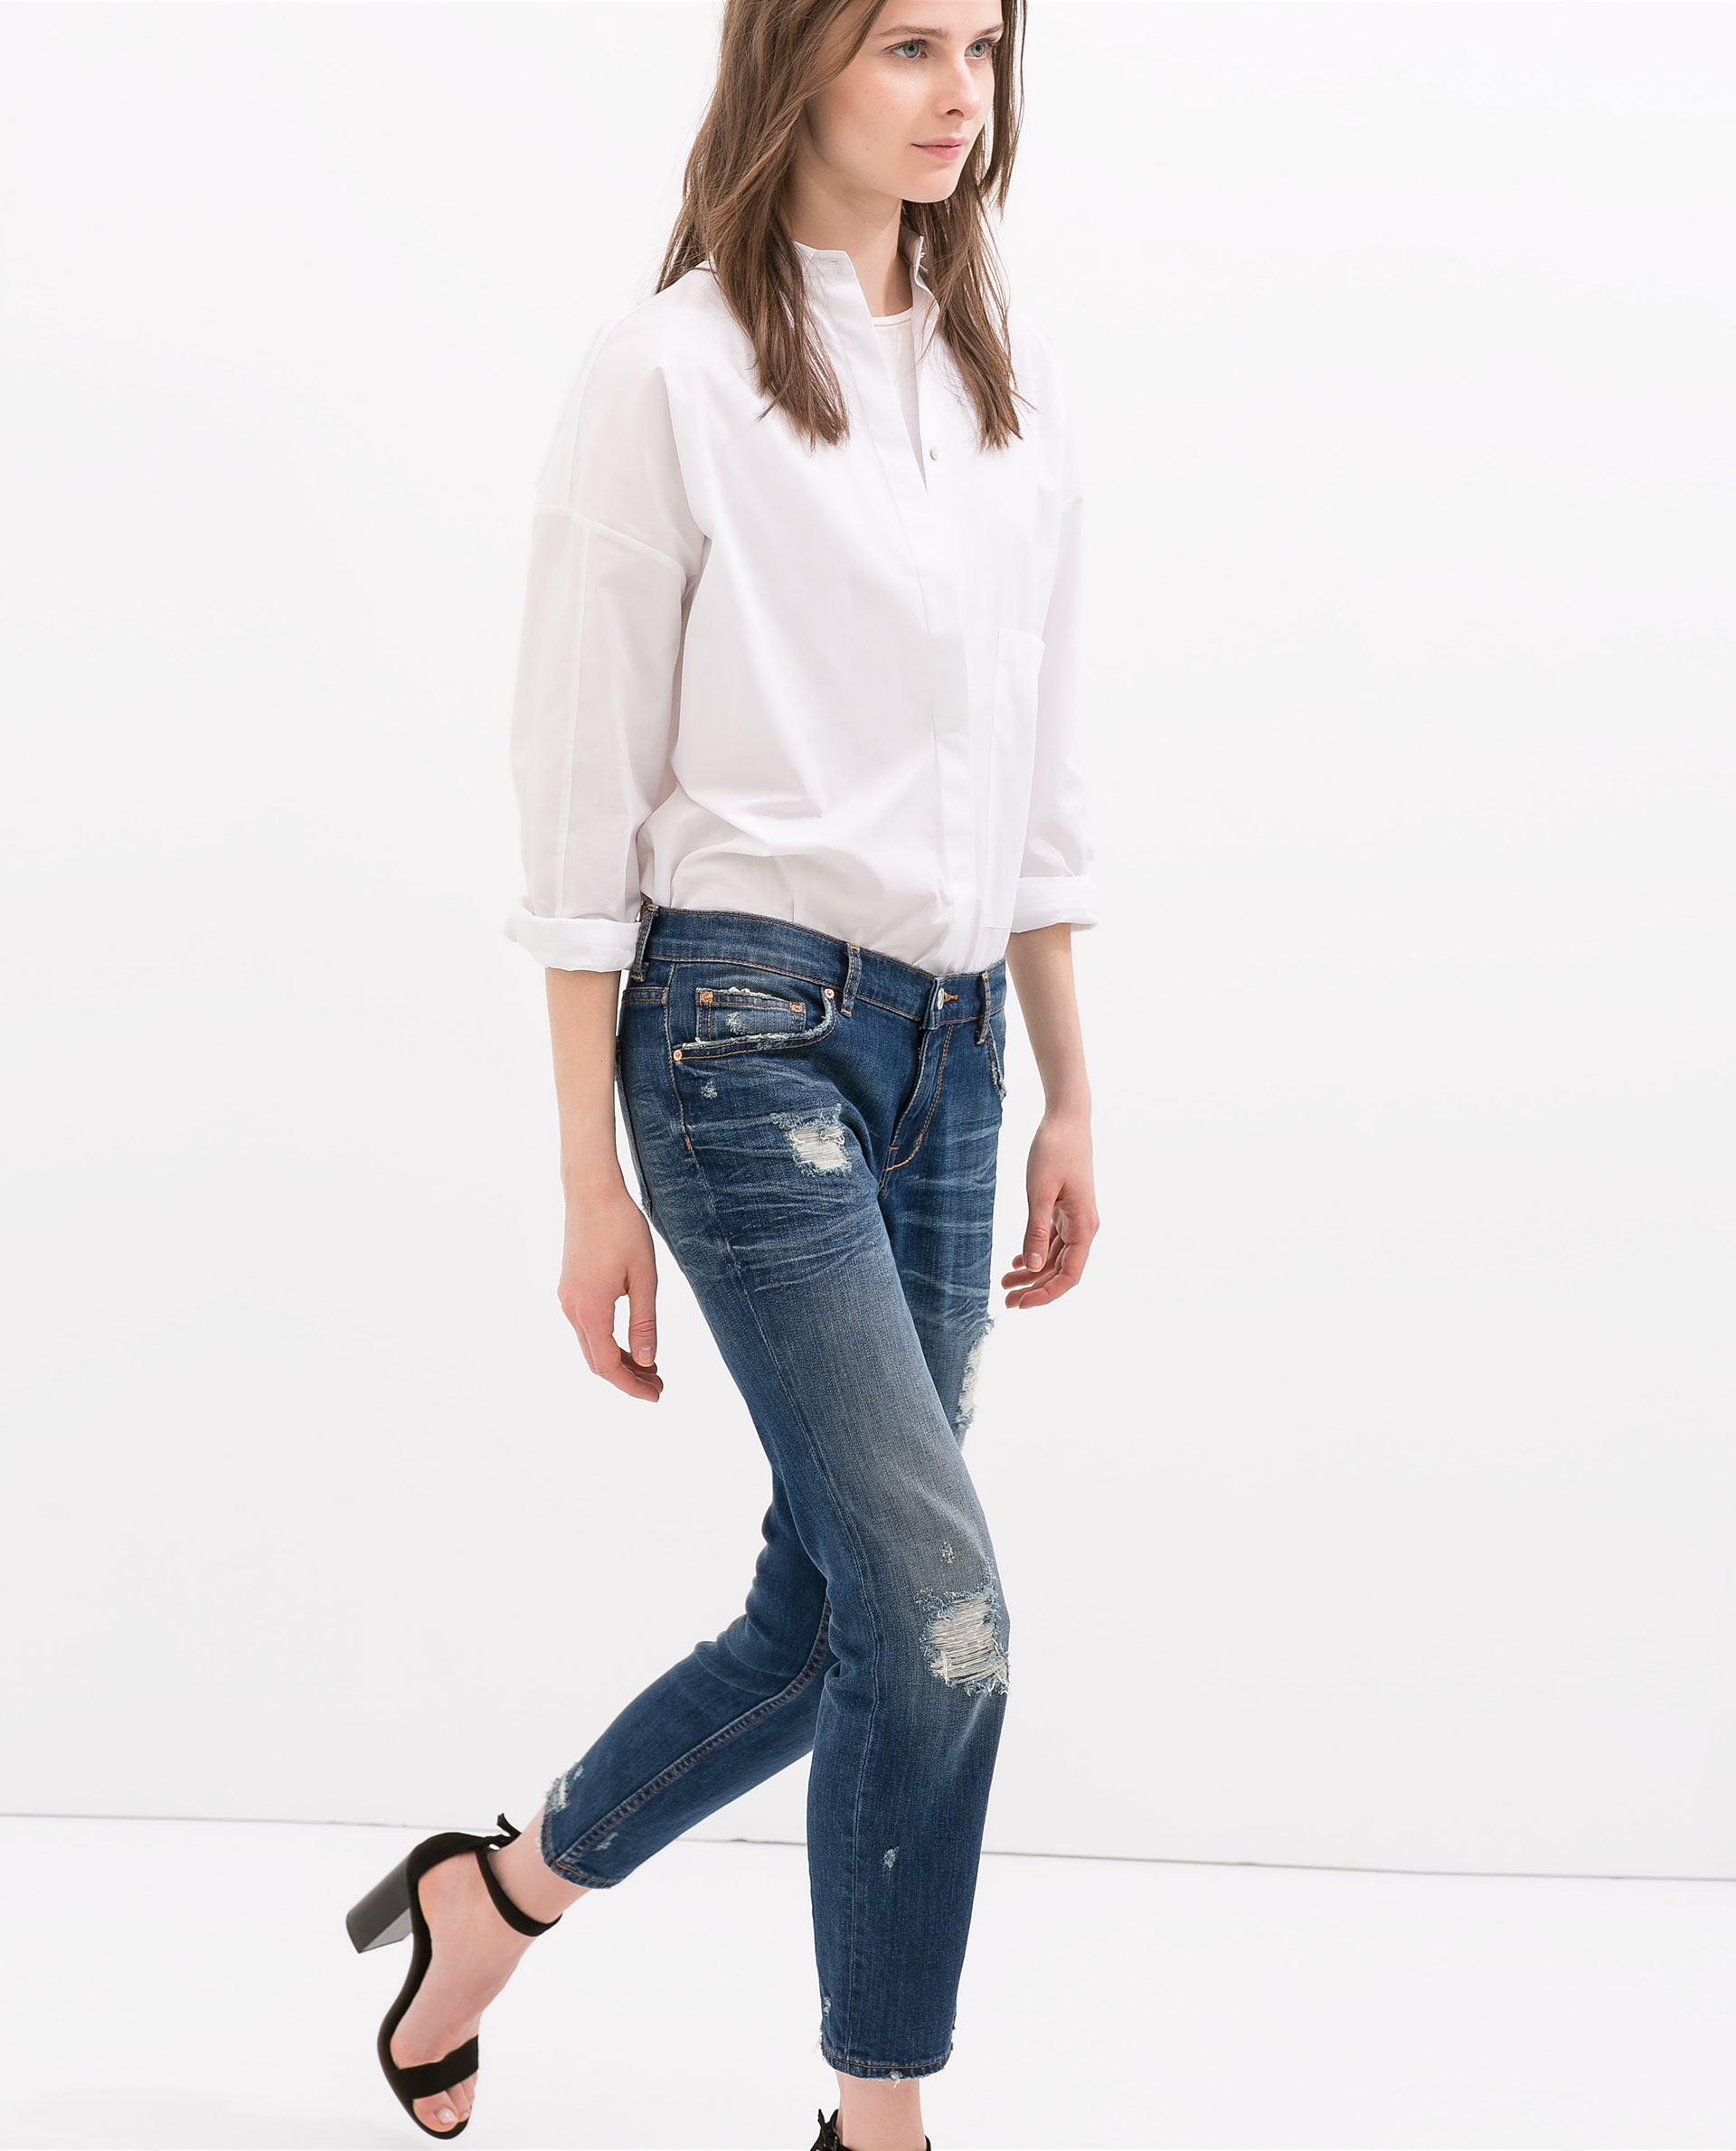 Relaxed Fit Jeans For Women - Xtellar Jeans